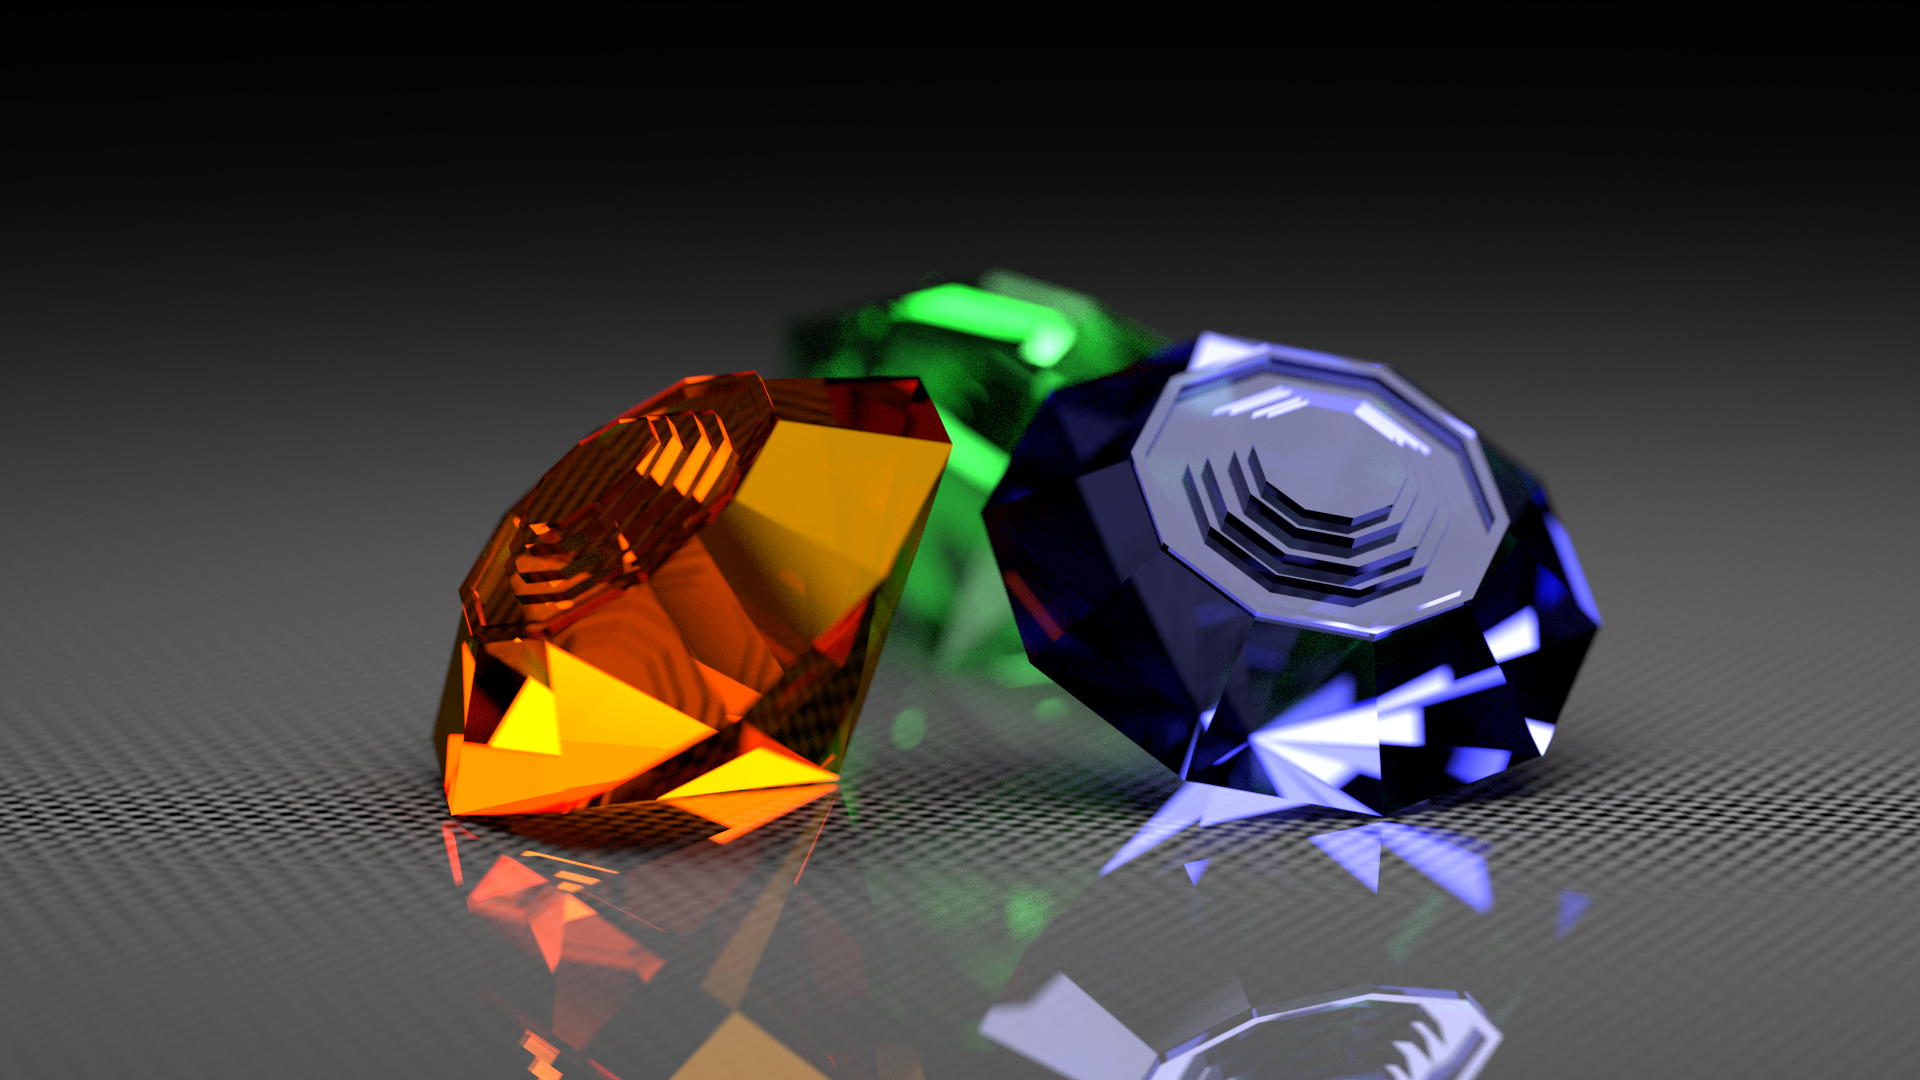 coloured cristal spheres (full hd)dario999 on deviantart